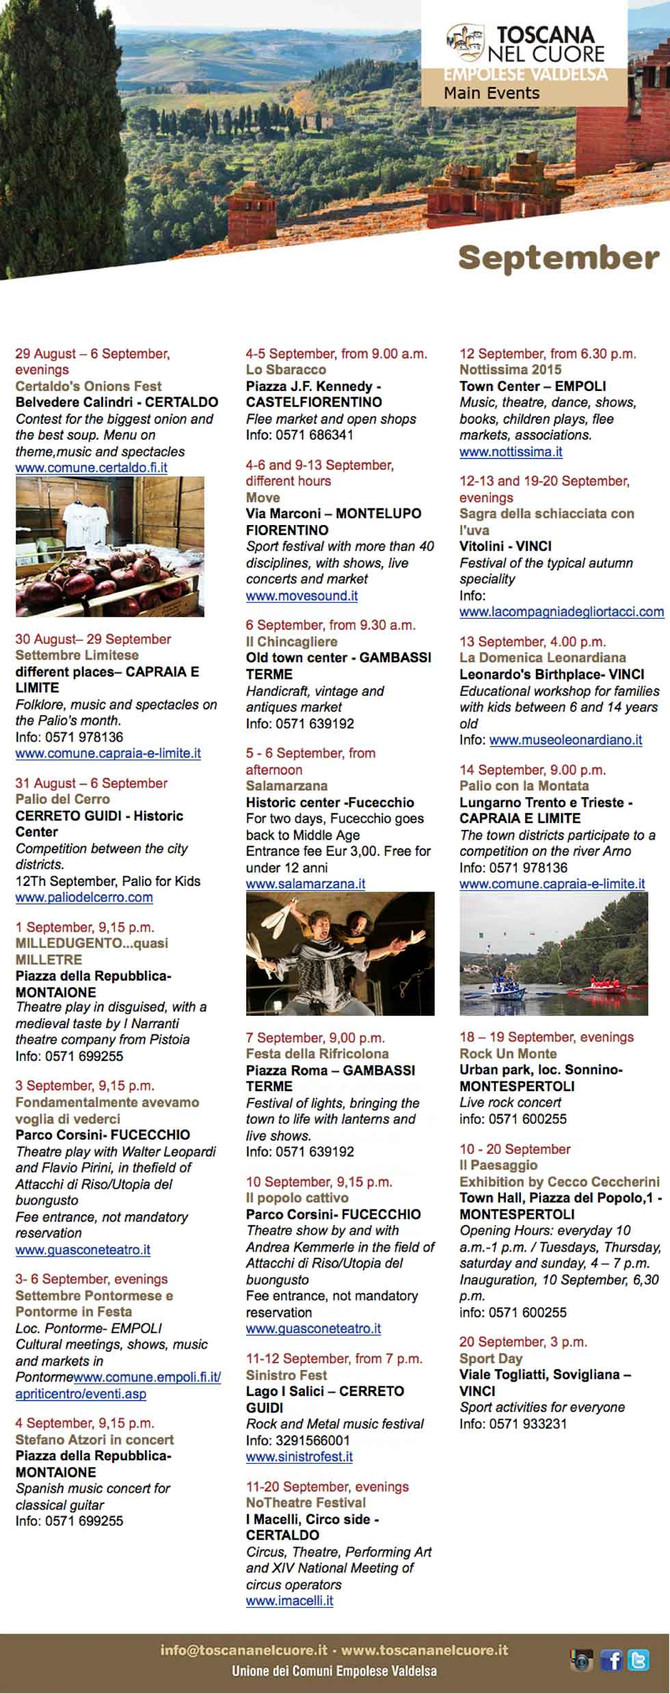 IN THE HEART OF TUSCANY - SEPTEMBER - EVENTS